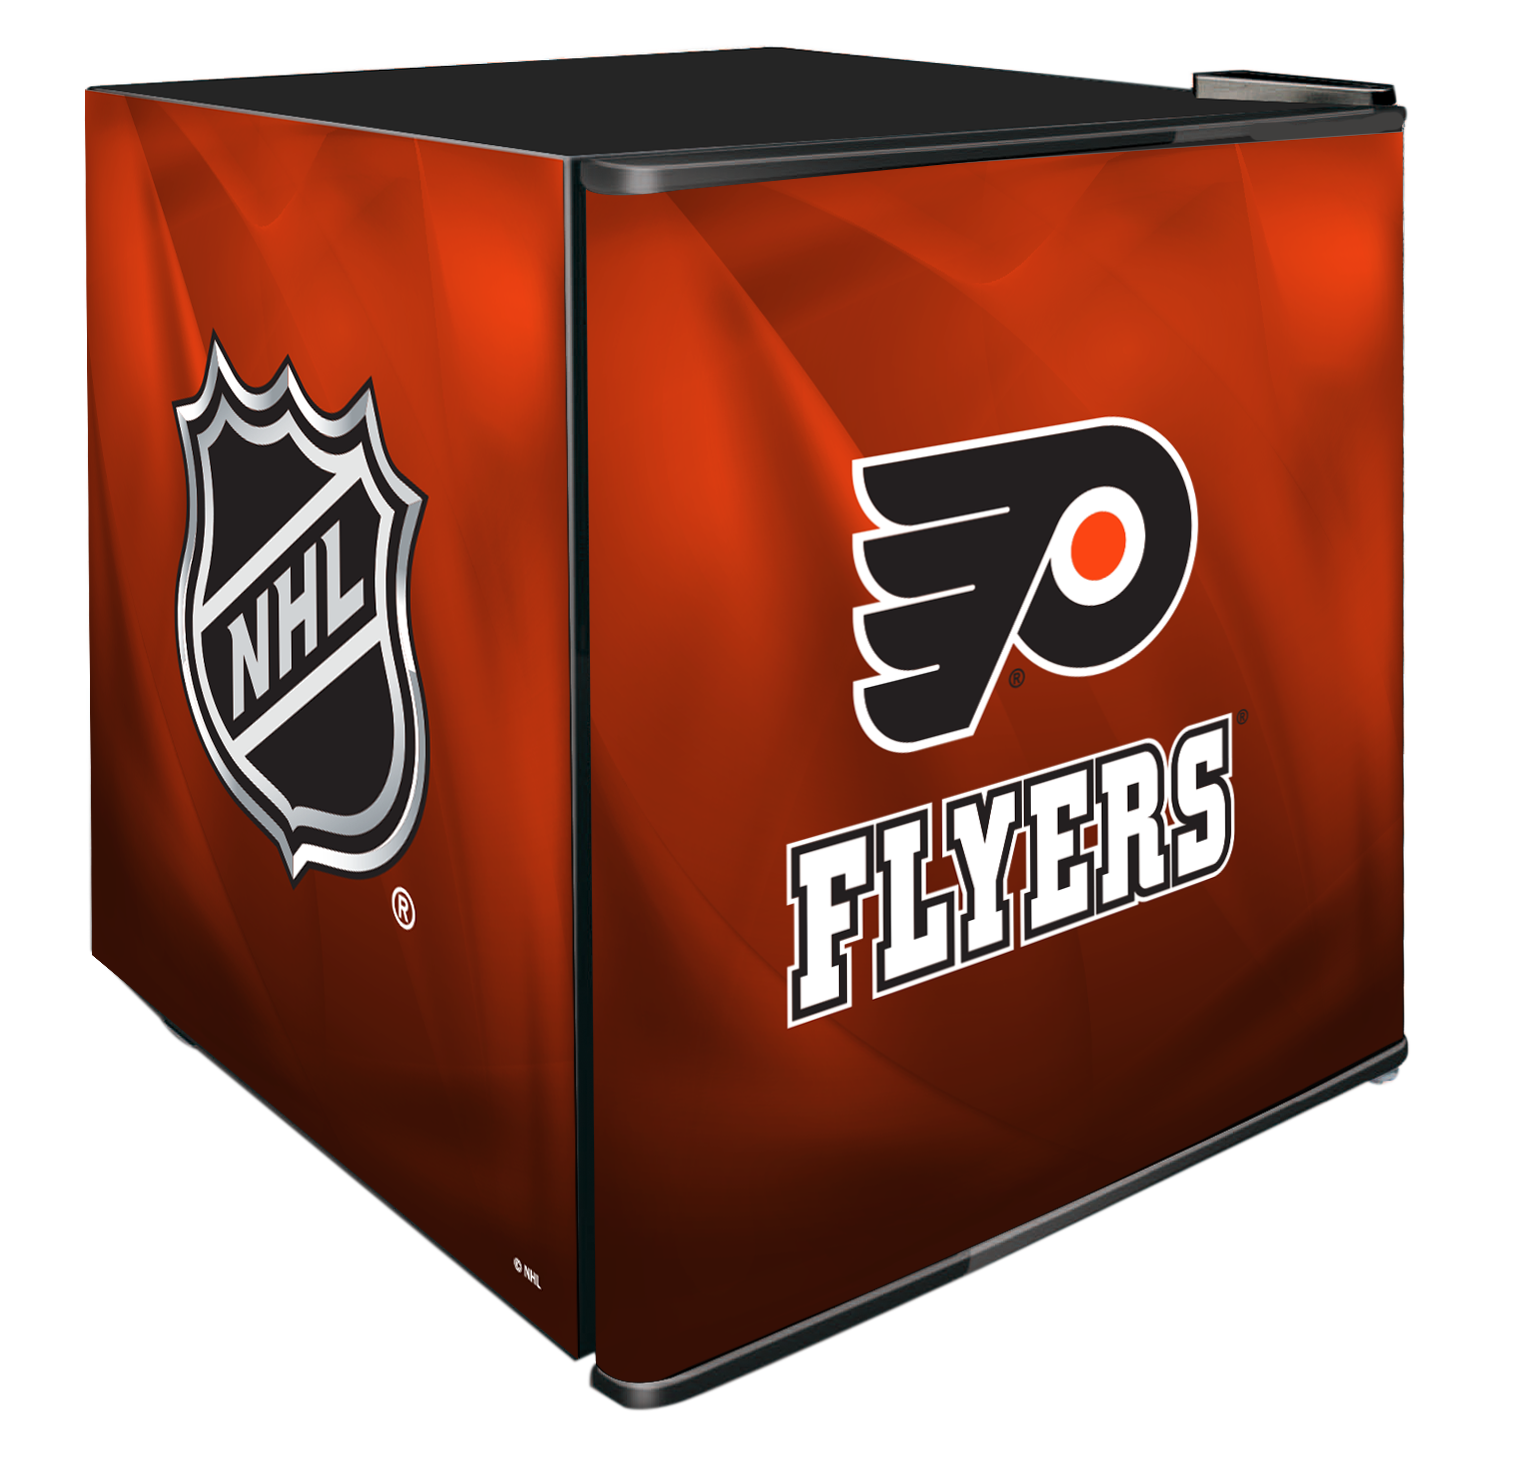 NHL Solid Door Refrigerated Beverage Center 1.8 cu ft - Philadelphia Flyers